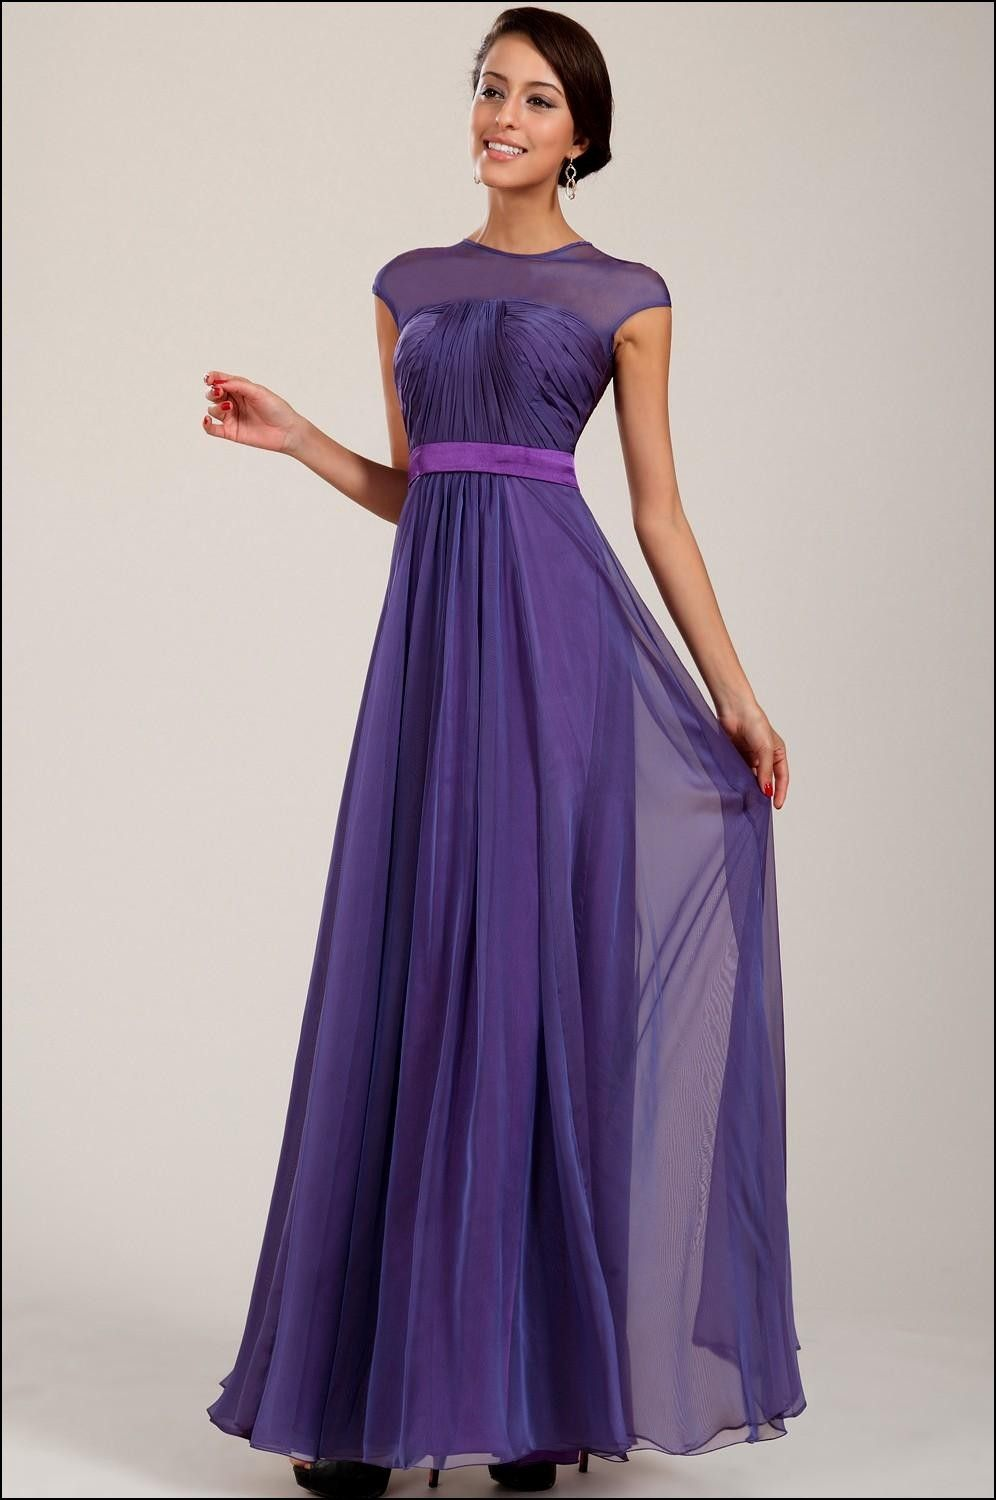 Purple Bridesmaid Dresses with Sleeves | Dresses and Gowns Ideas ...